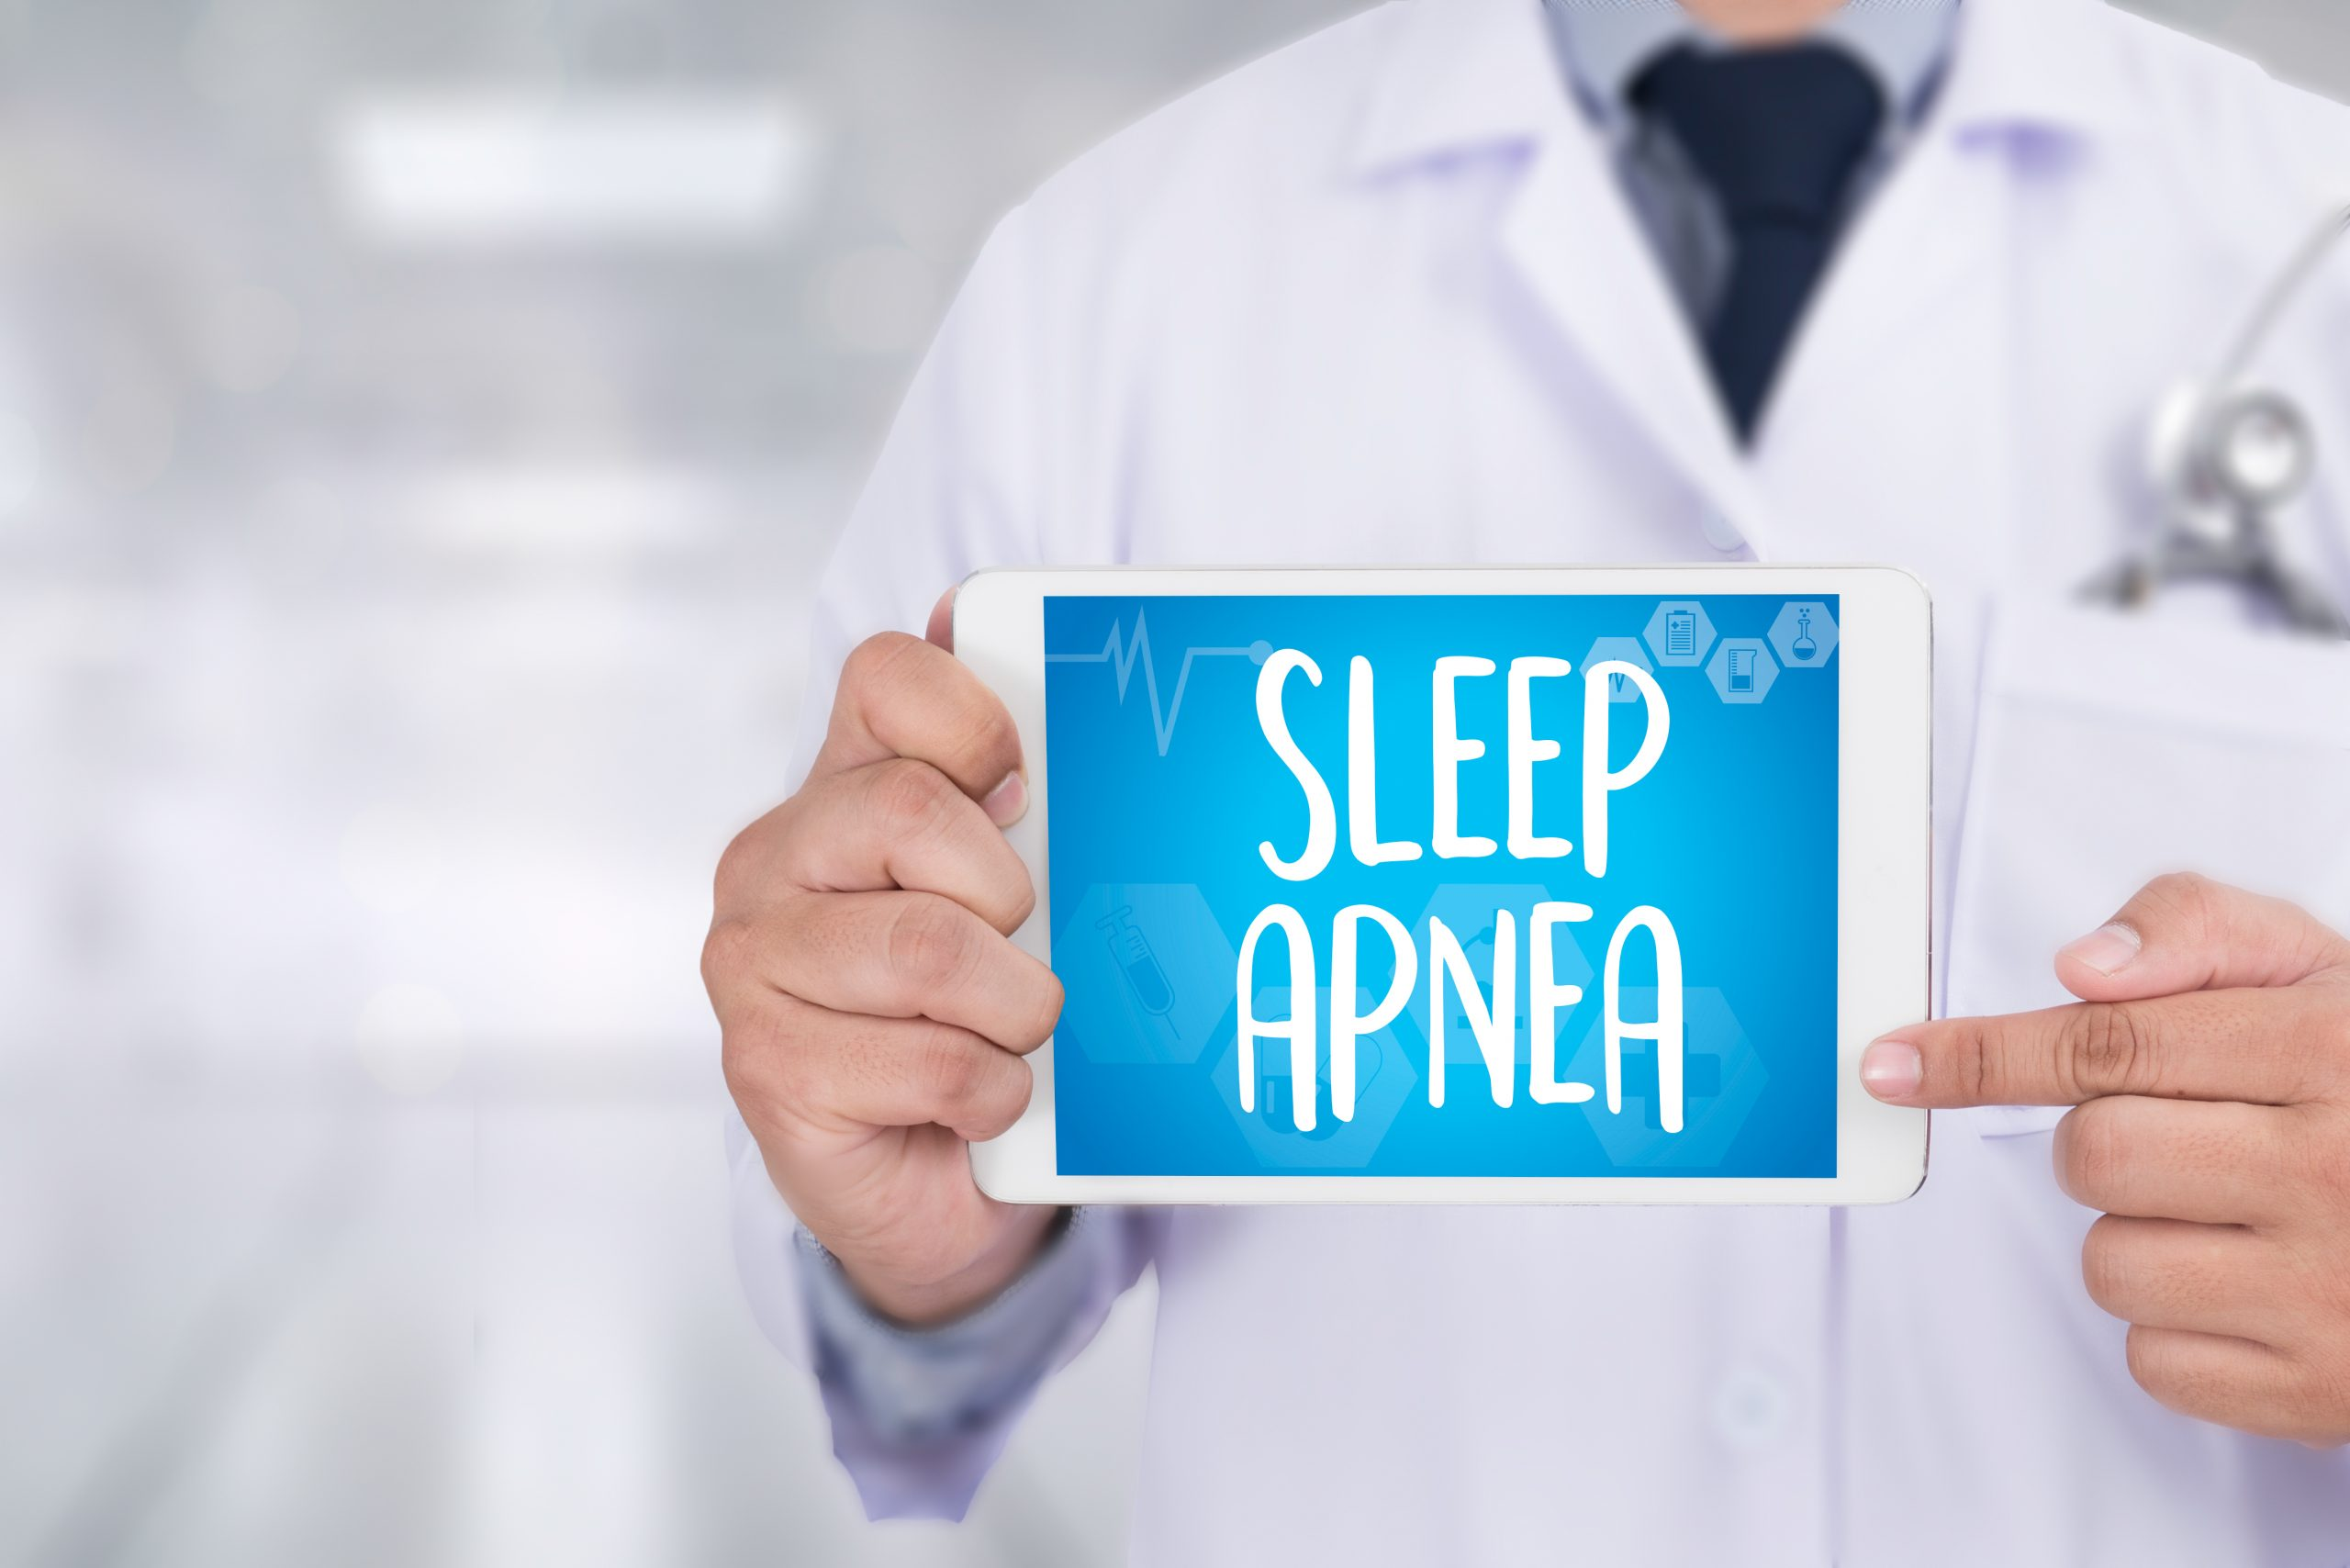 VA Rating for Sleep Apnea